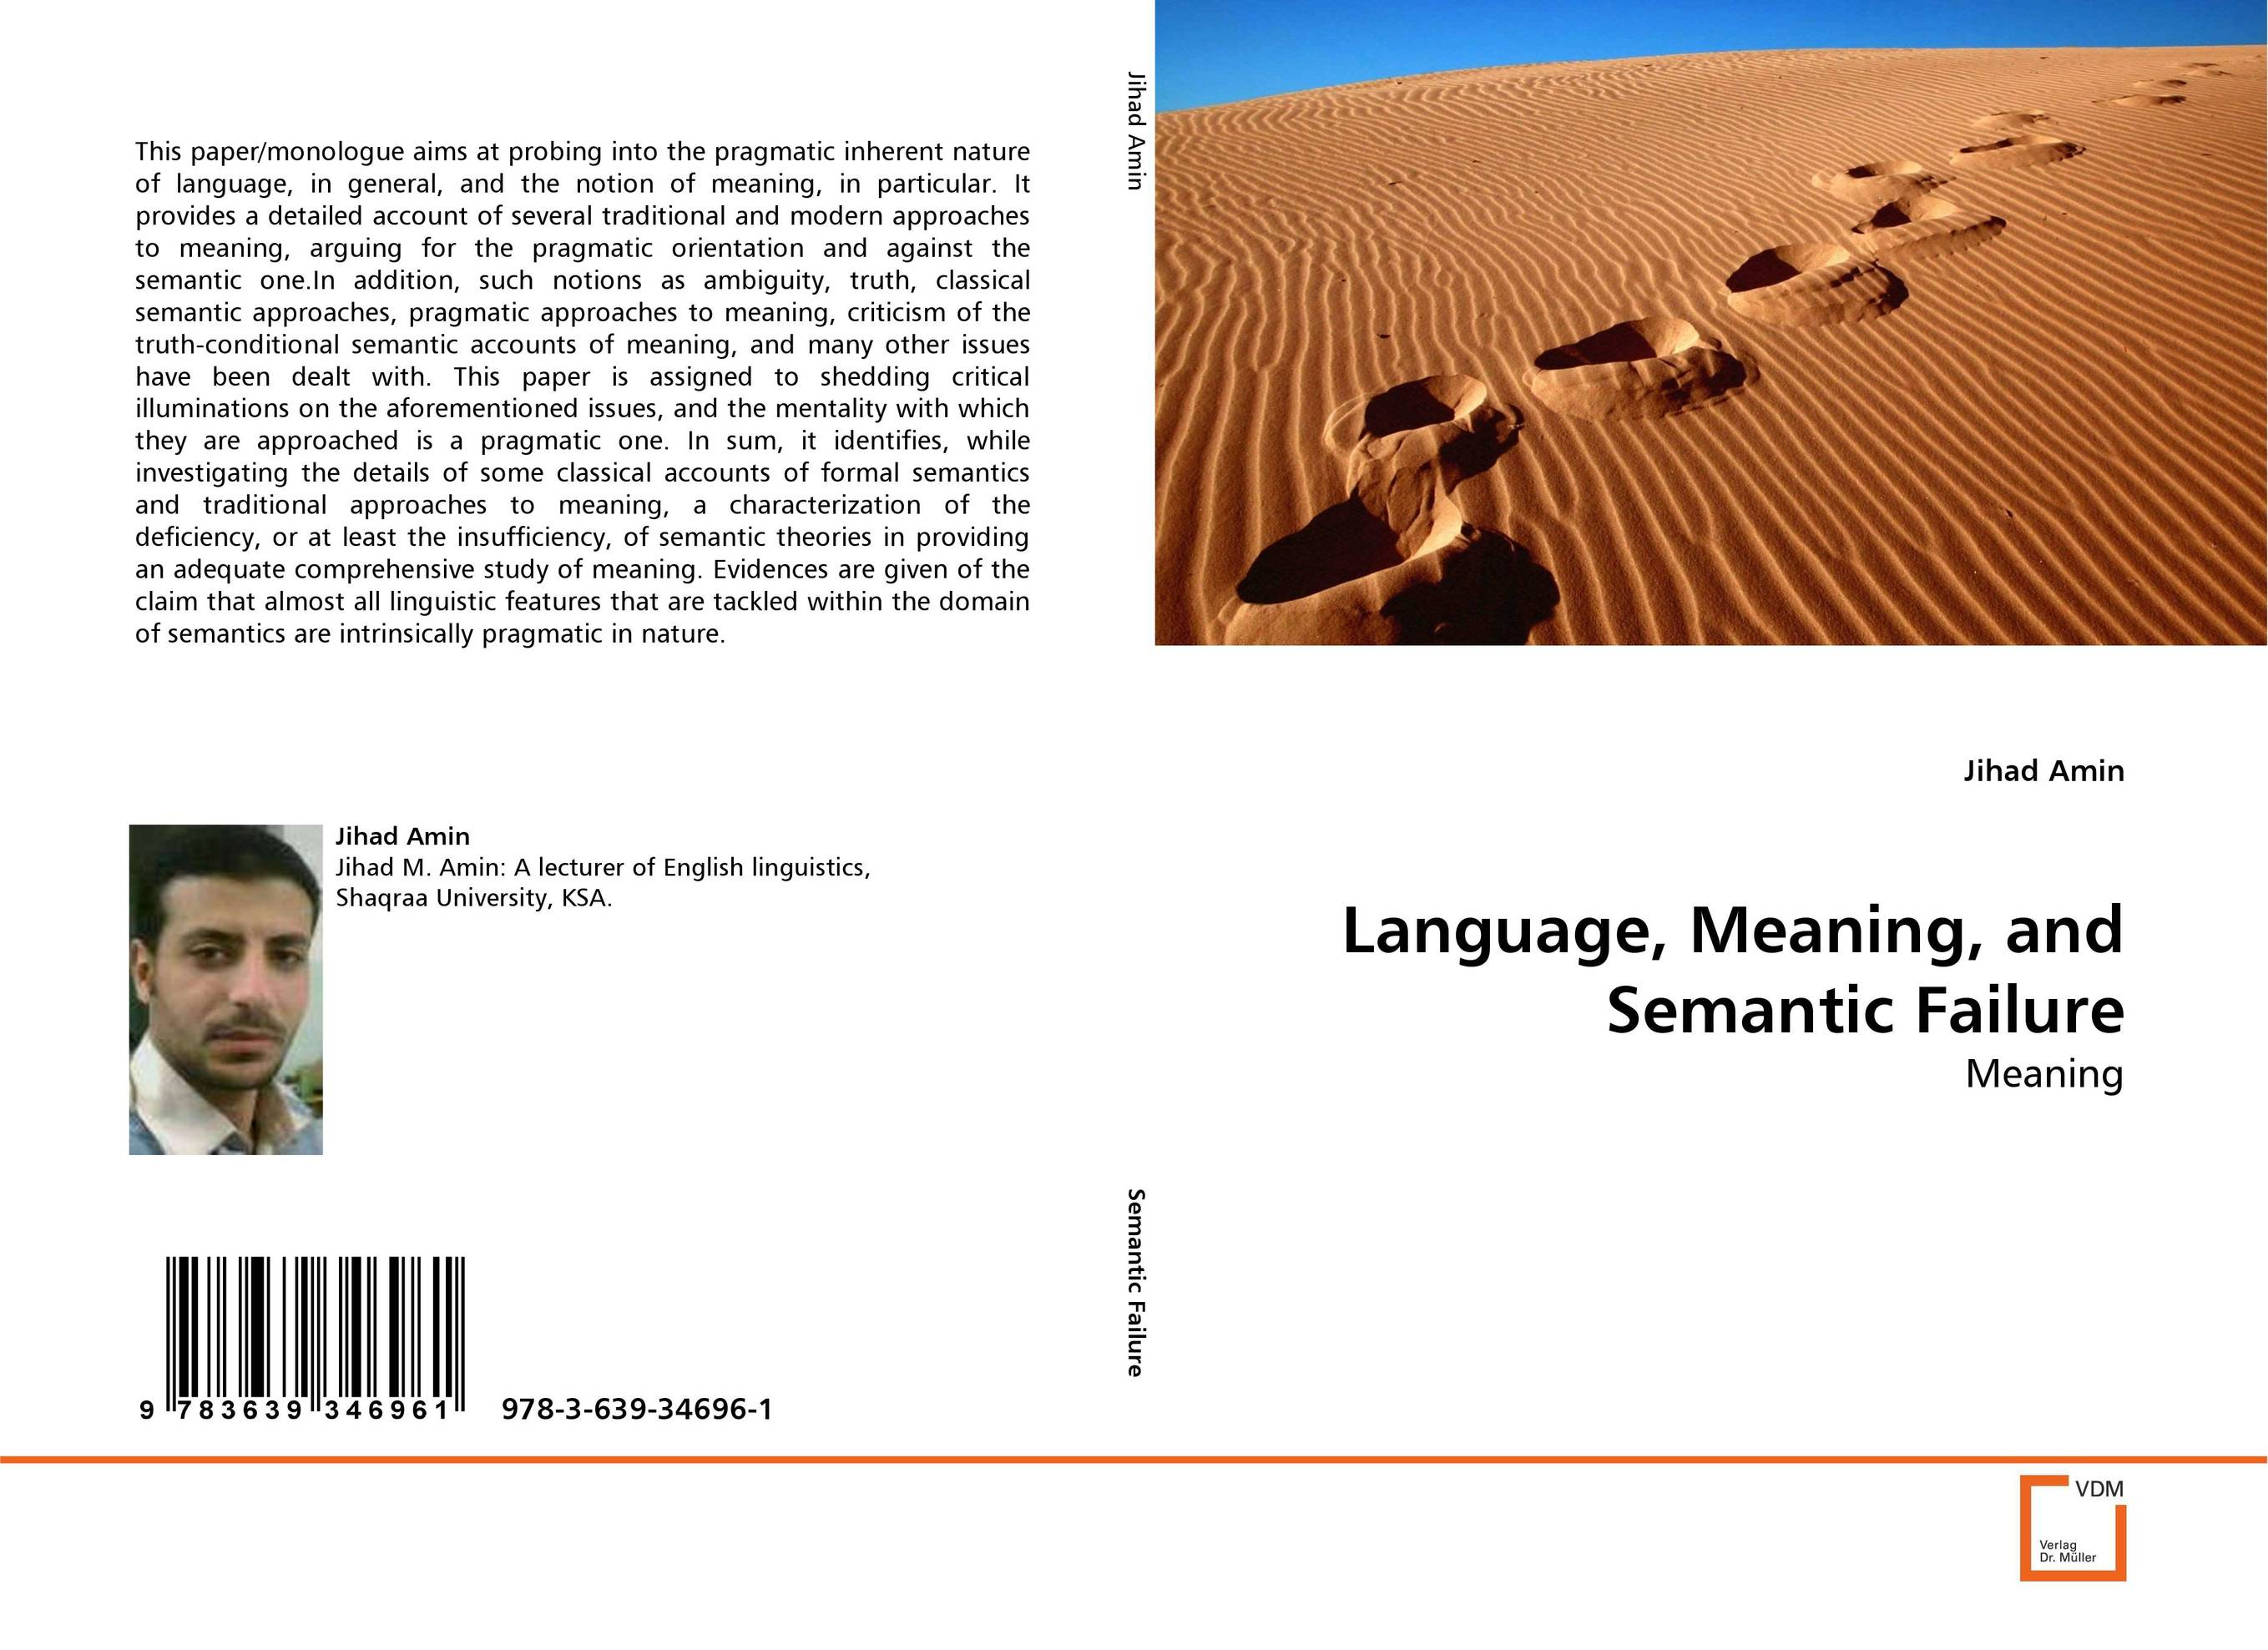 Language, Meaning, and Semantic Failure ways of meaning – an introduction to a philosophy of language